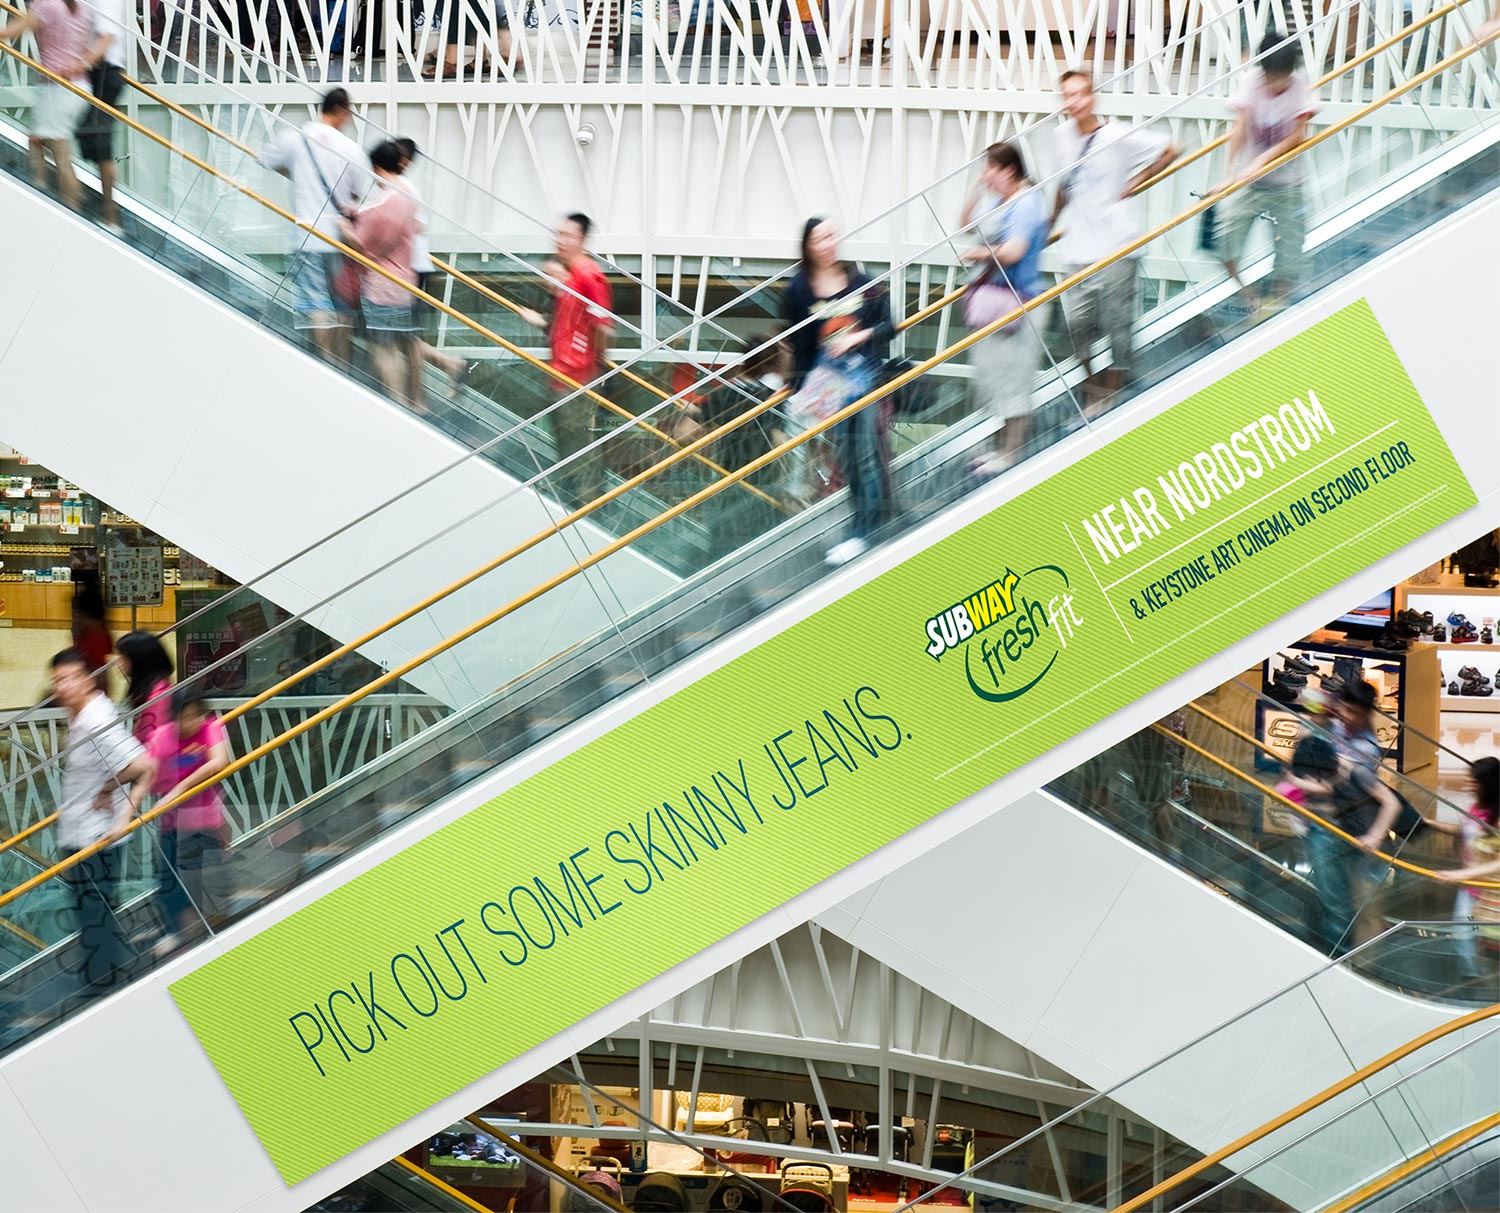 Subway, Out of Home & Print: Skinny Jeans Escalator Banner